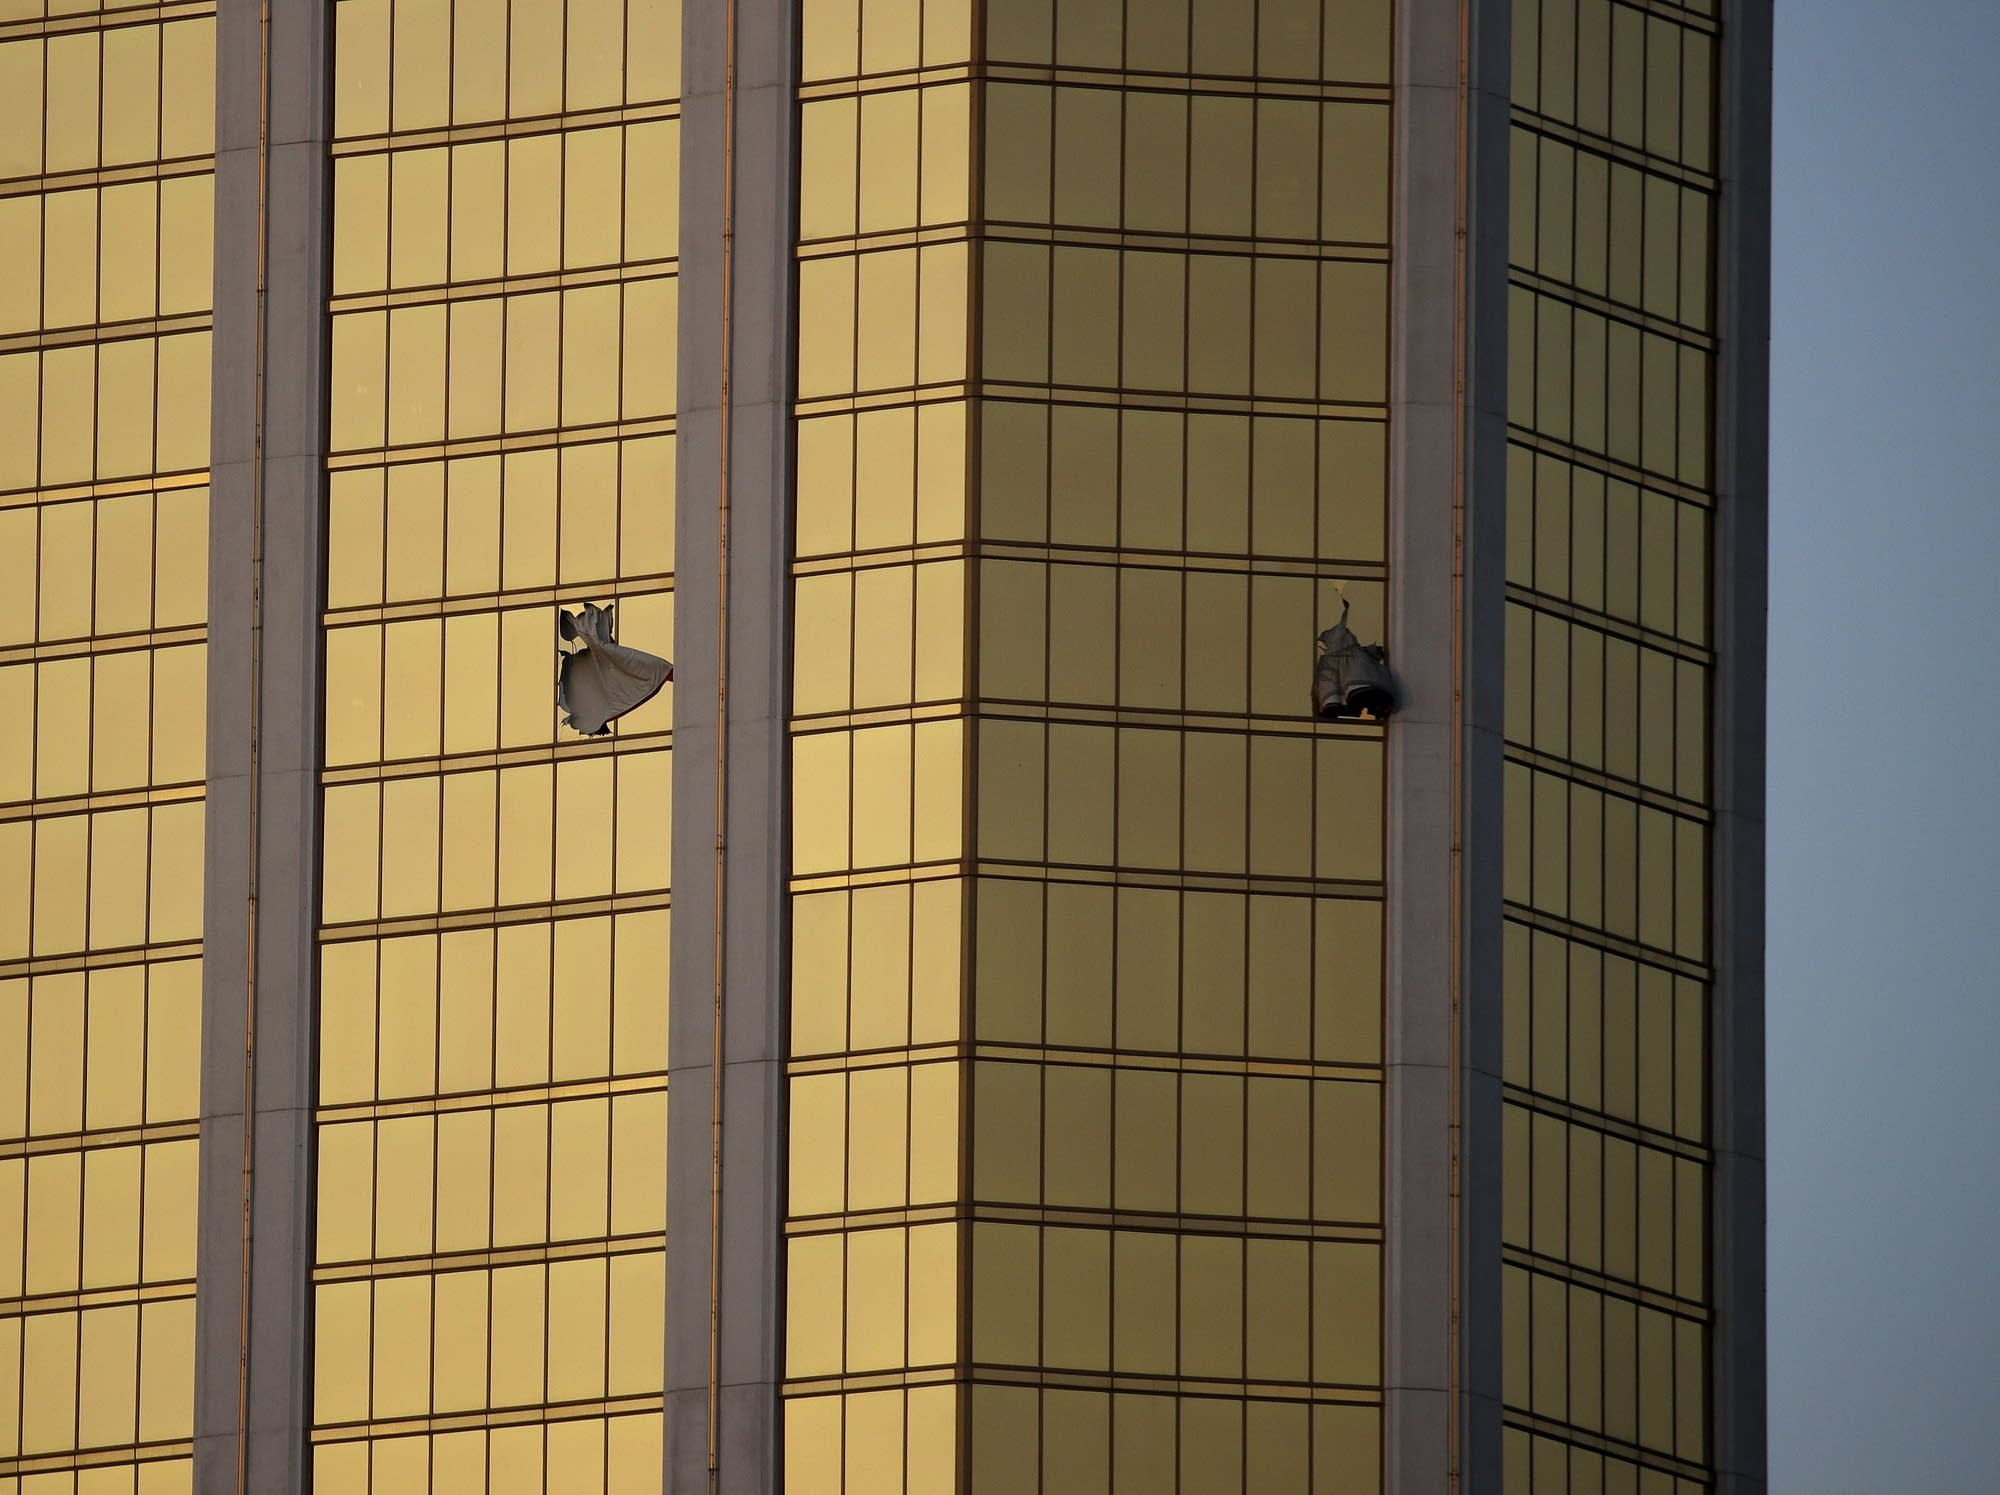 Drapes billow out of broken windows at the Mandalay Bay resort.